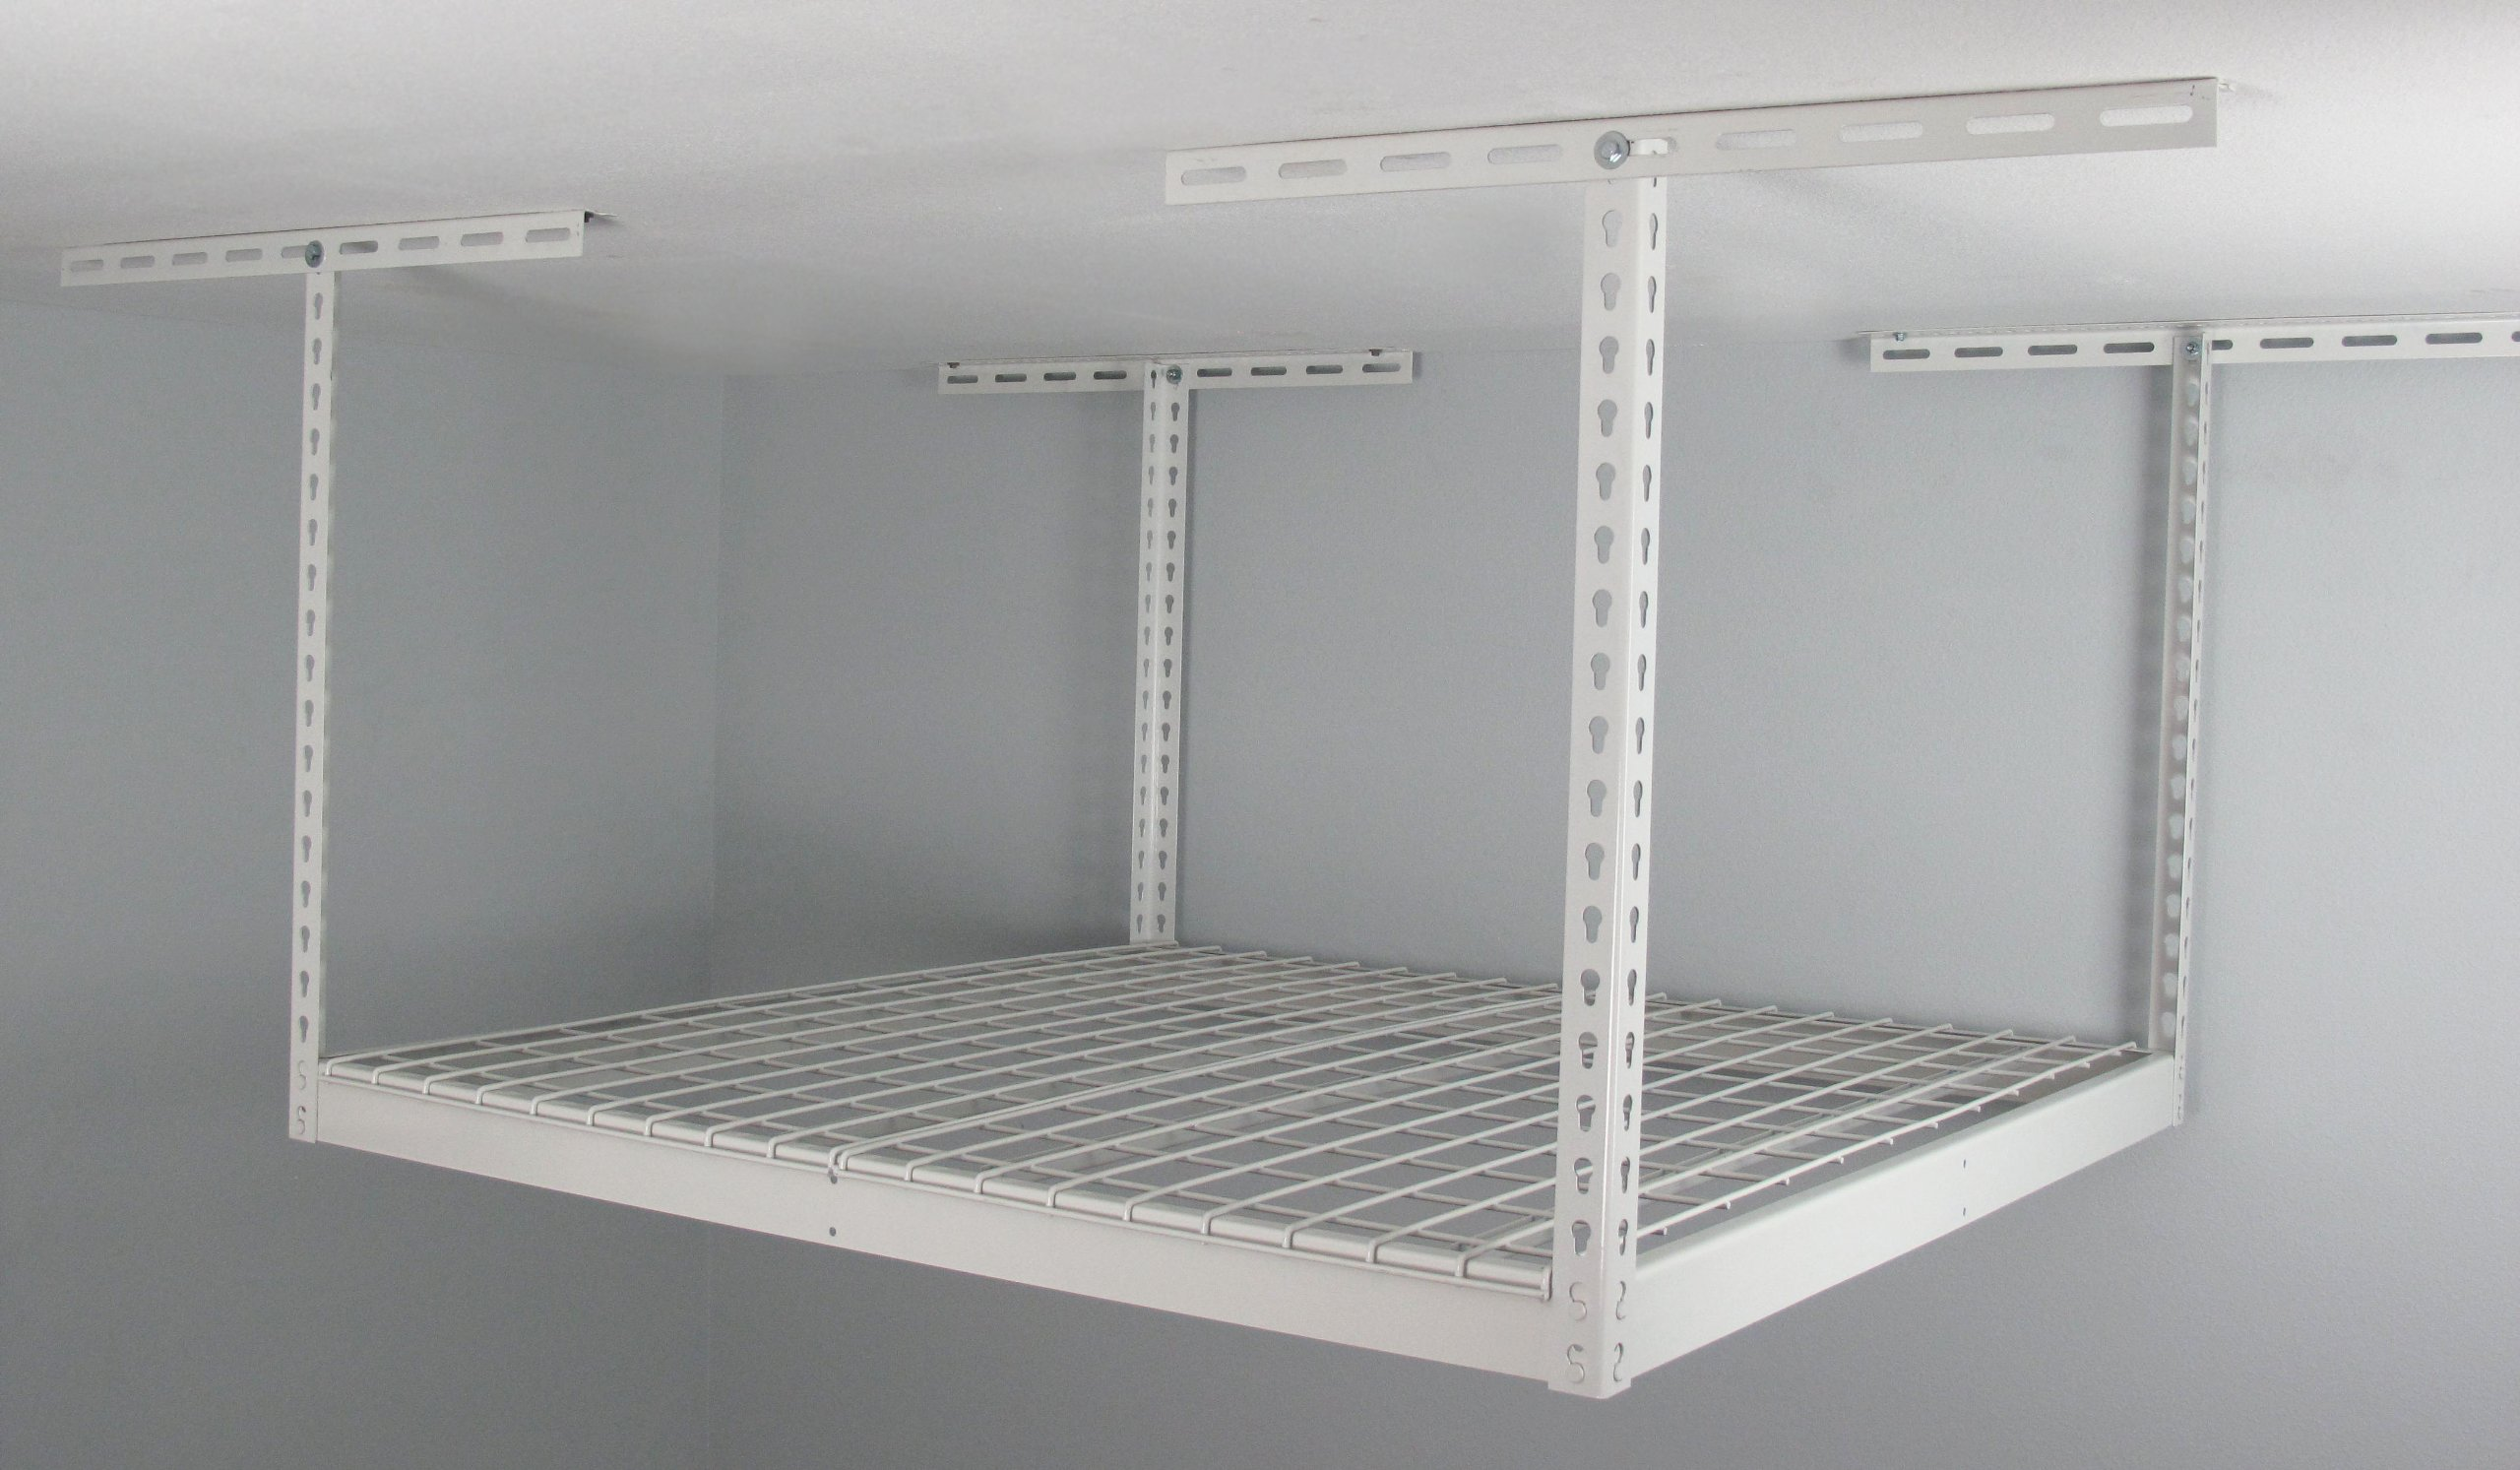 SafeRacks SR-4x4-W-24 Overhead Garage Storage Rack, 4' x 4'